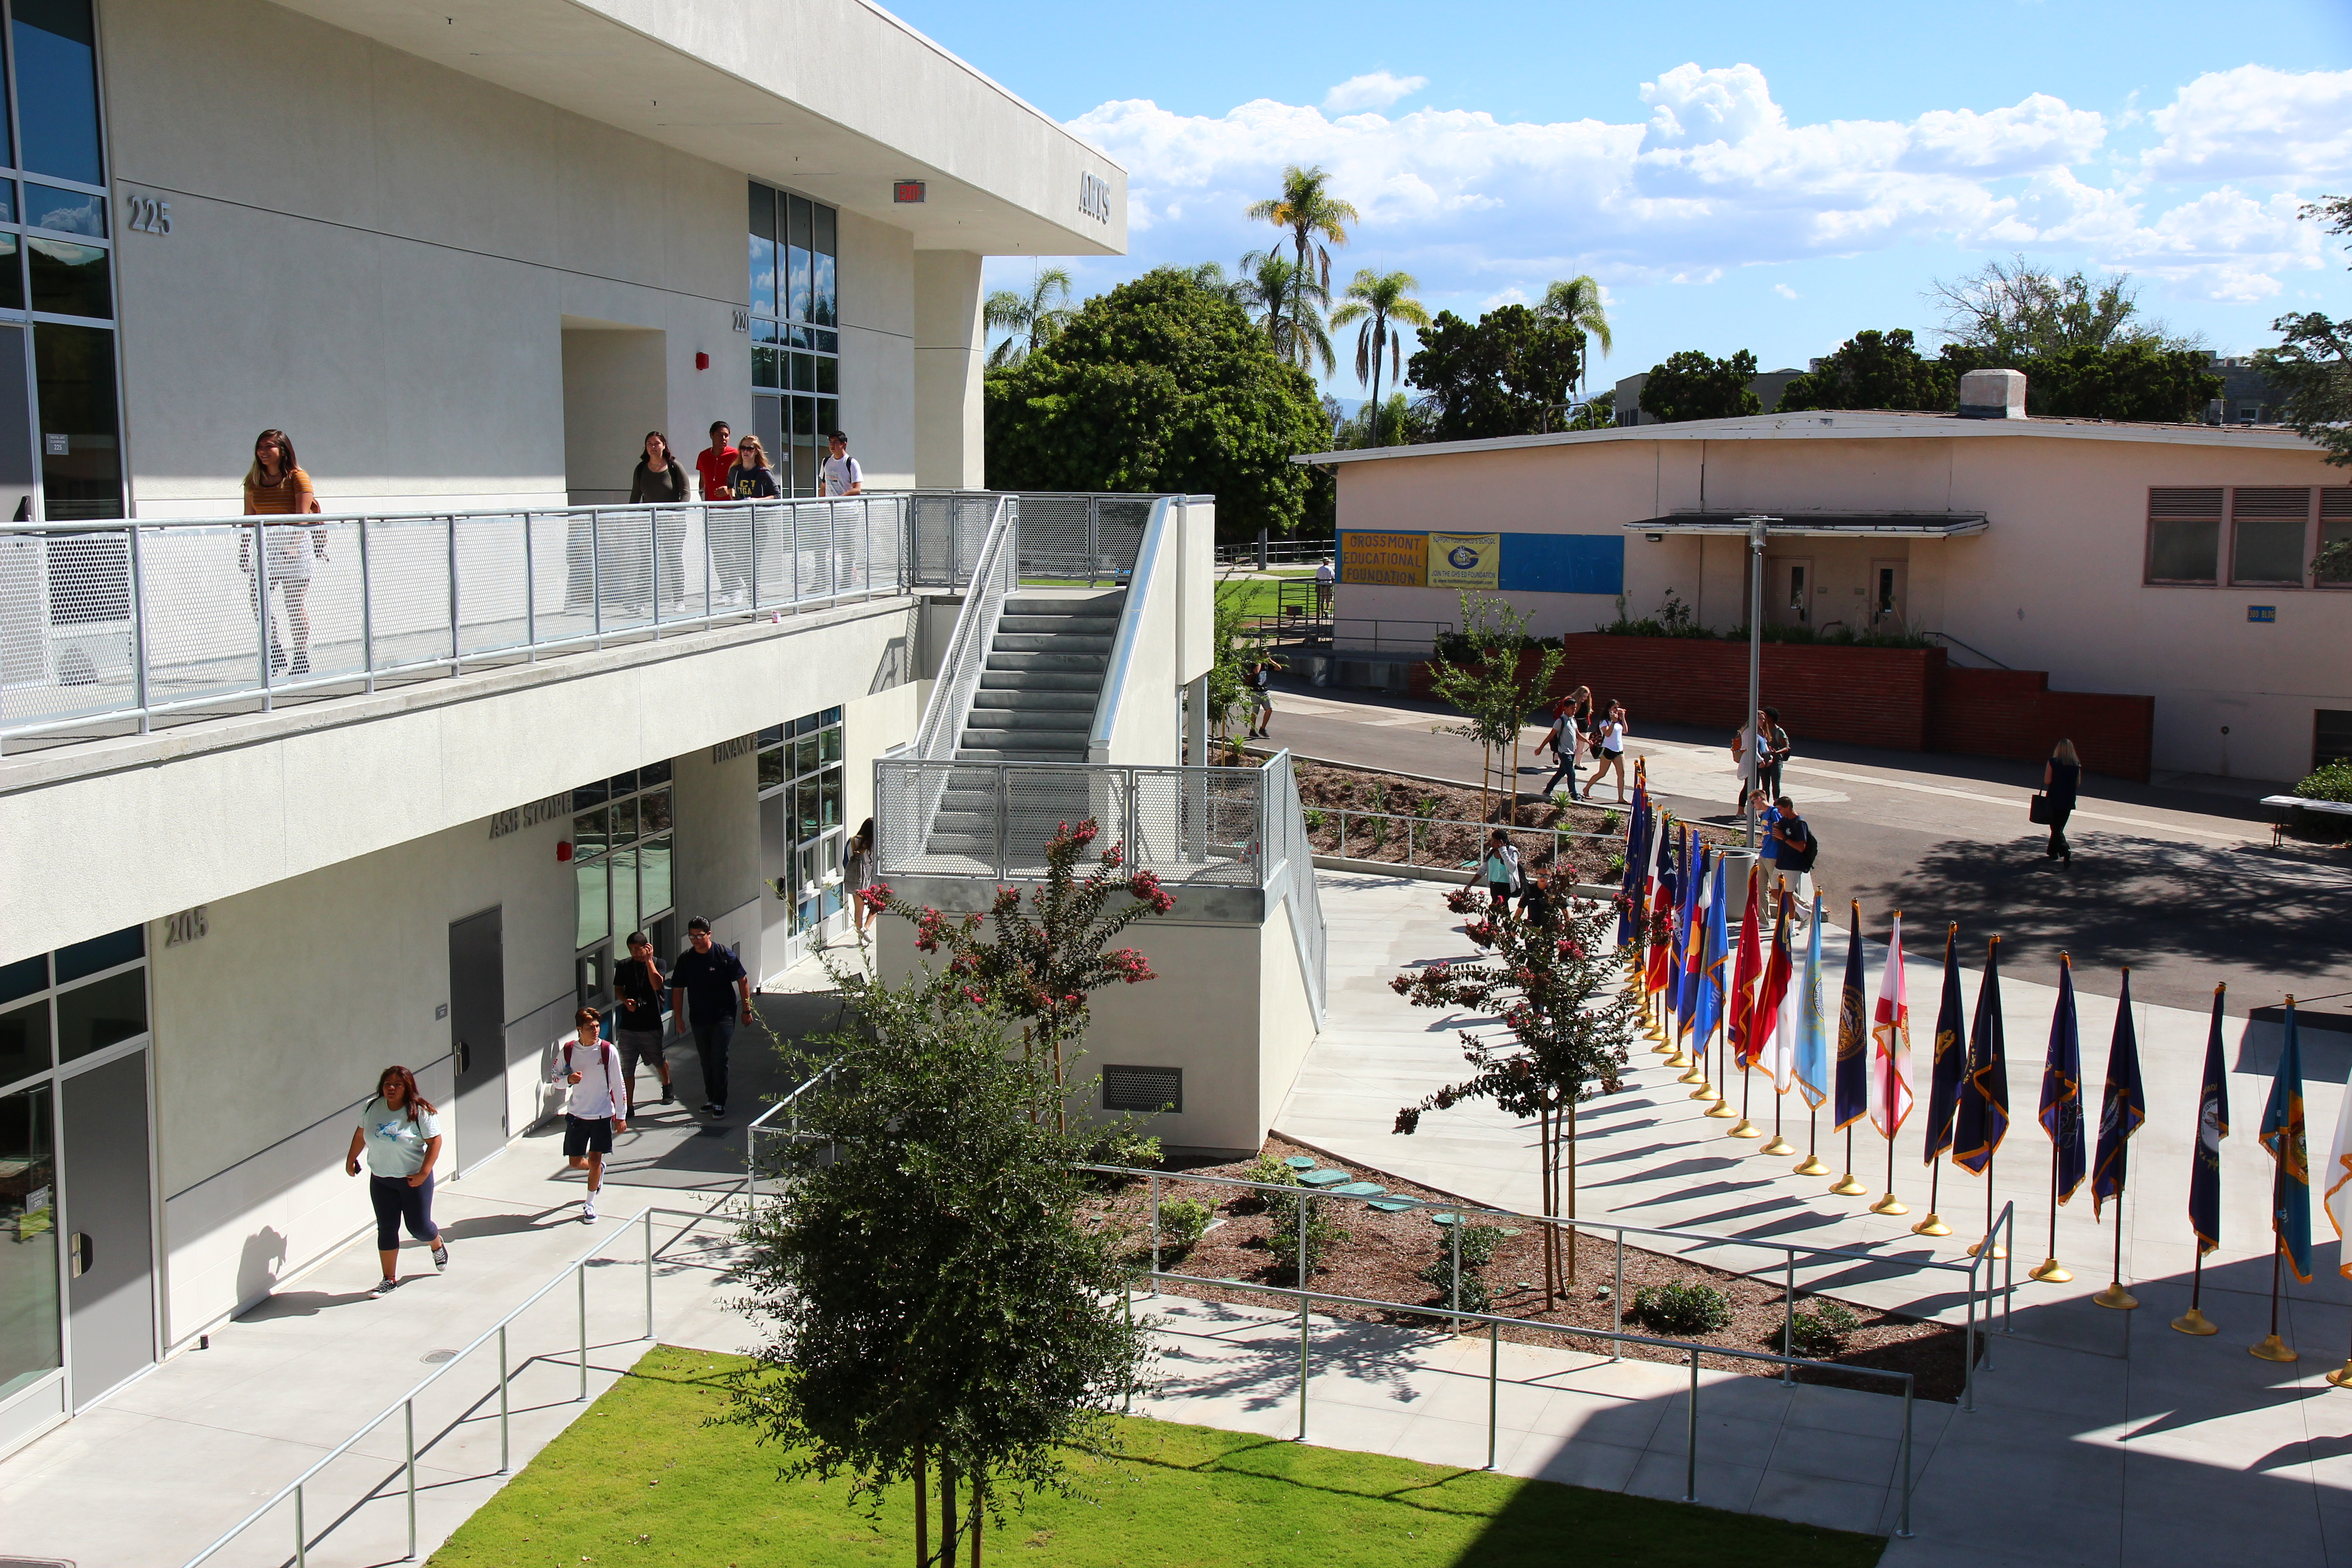 One of the new buildings at Grossmont High School.